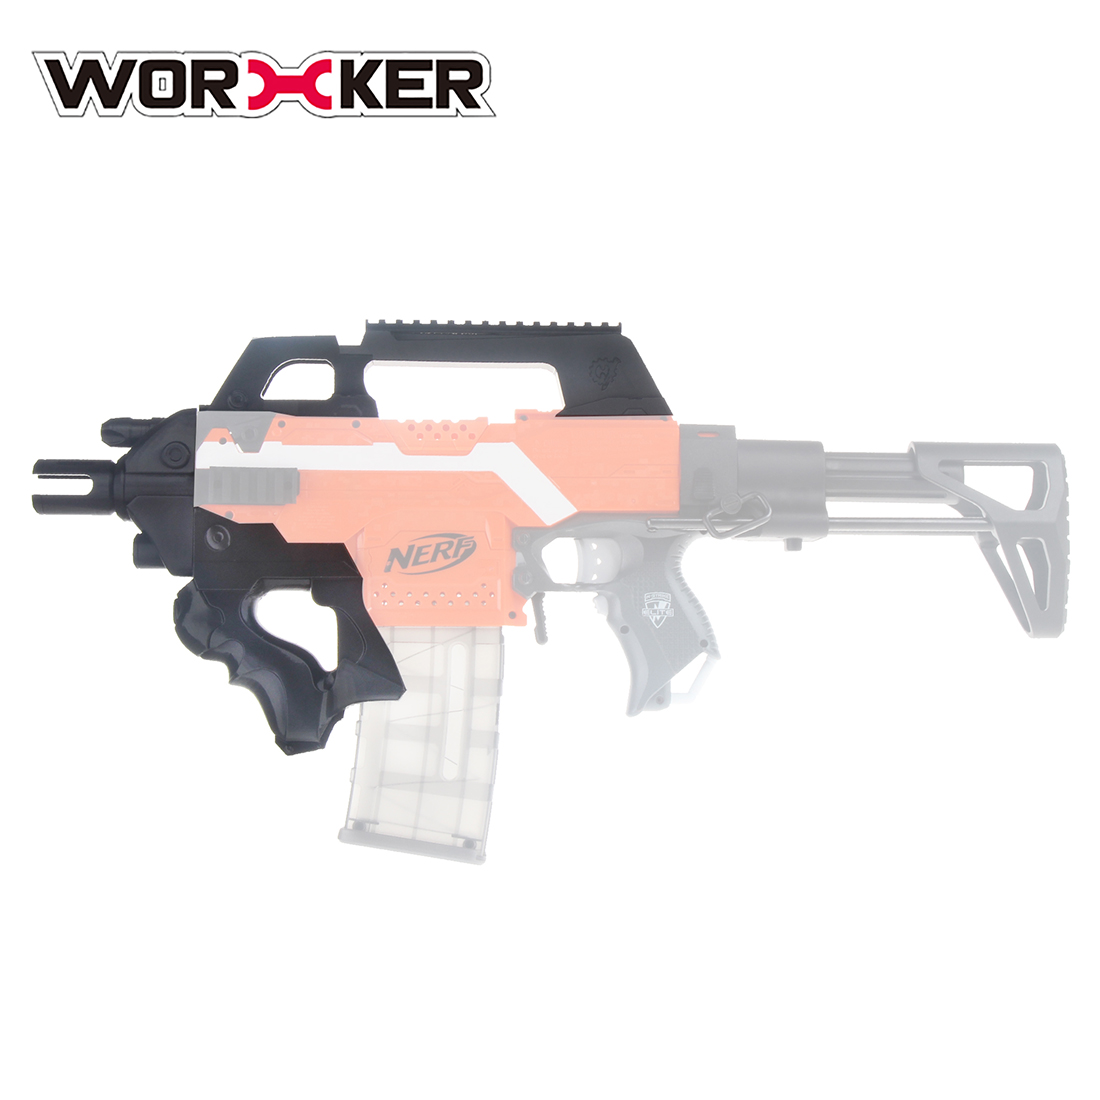 Worker F10555 3D Printing No.193 Thunder Type Front Tube Kit for Nerf Stryfe - Black цена